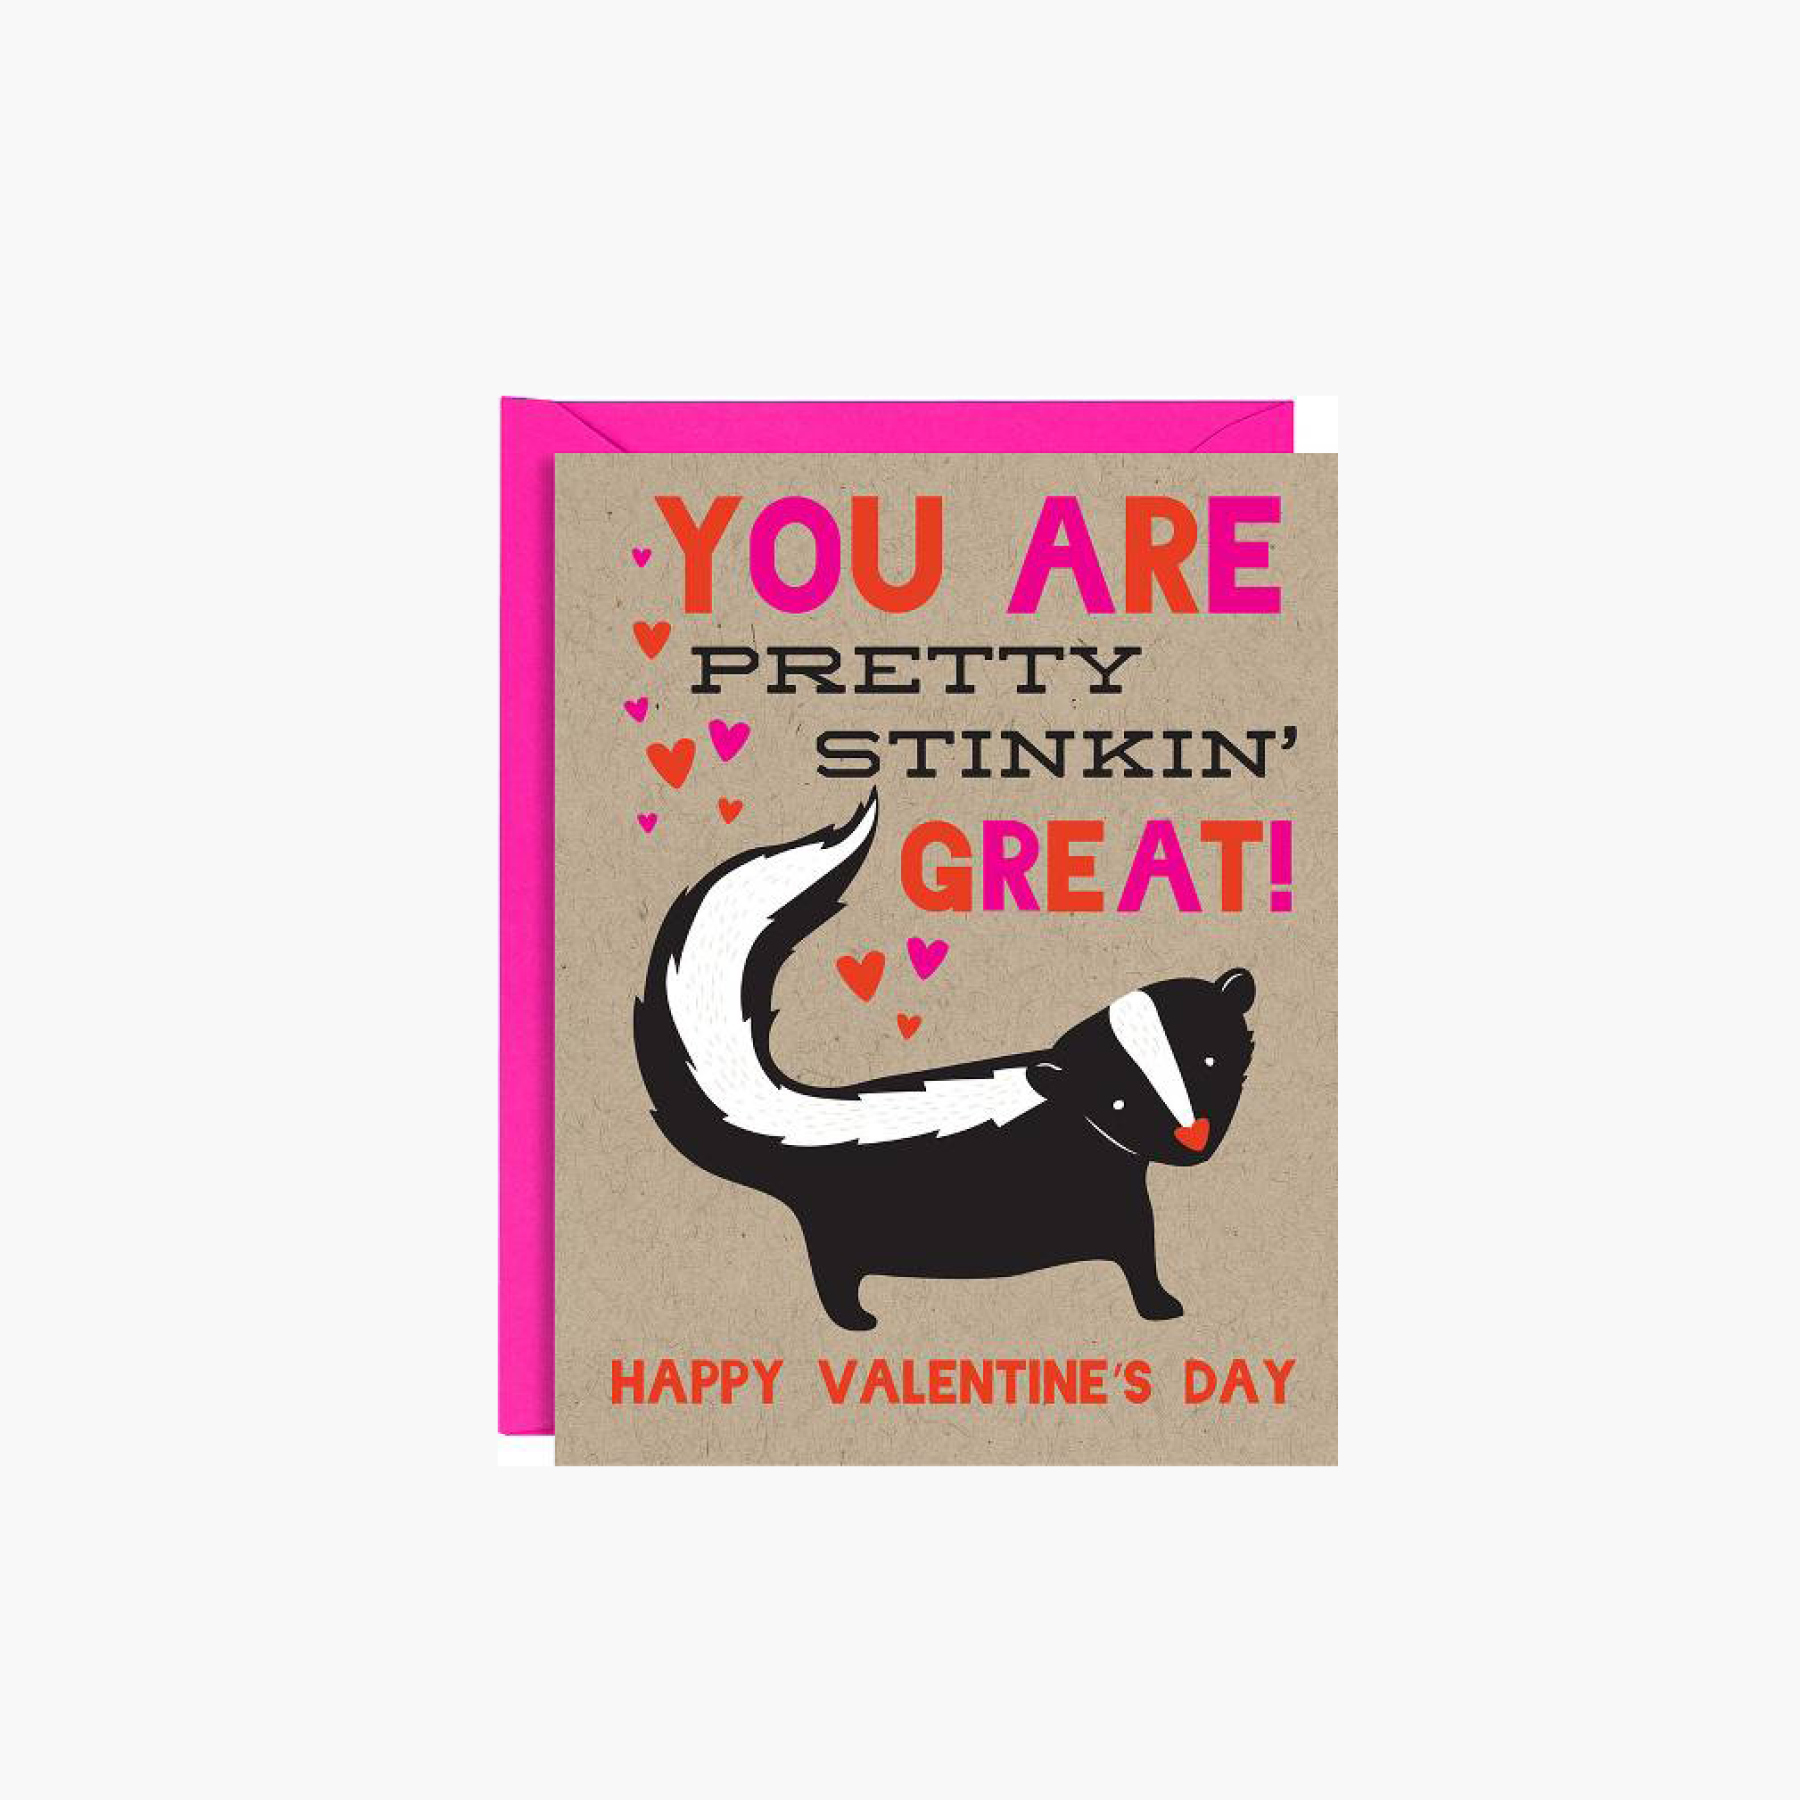 ALL-SORTS-OF-VALENTINES-CARD